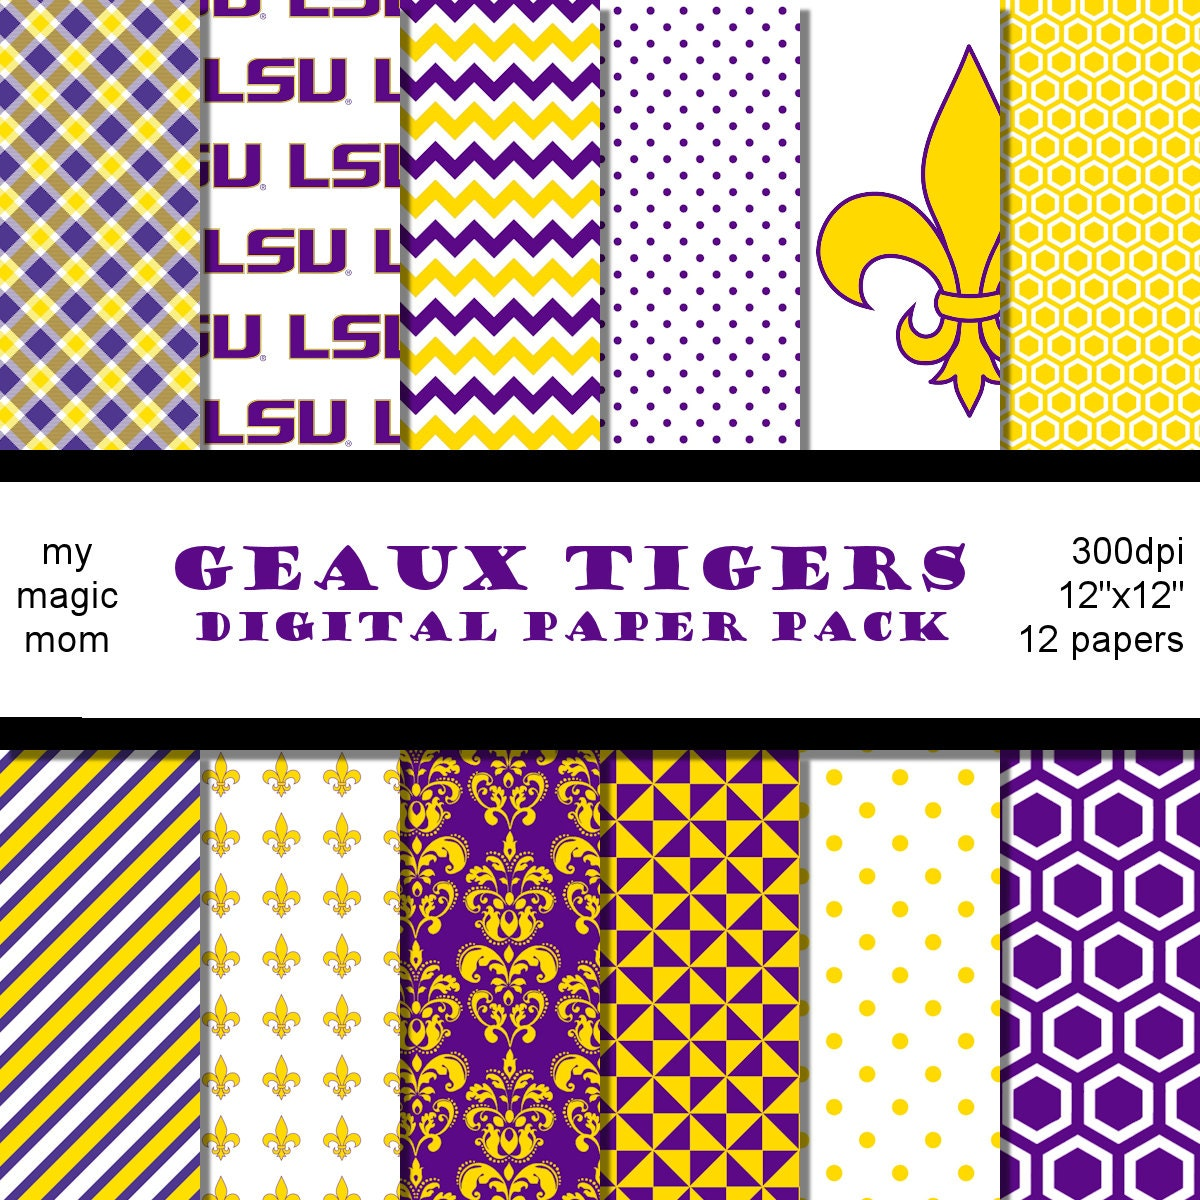 Lsu Tigers Football Scrapbook Paper Pack 12 Inch Pages Purple Etsy